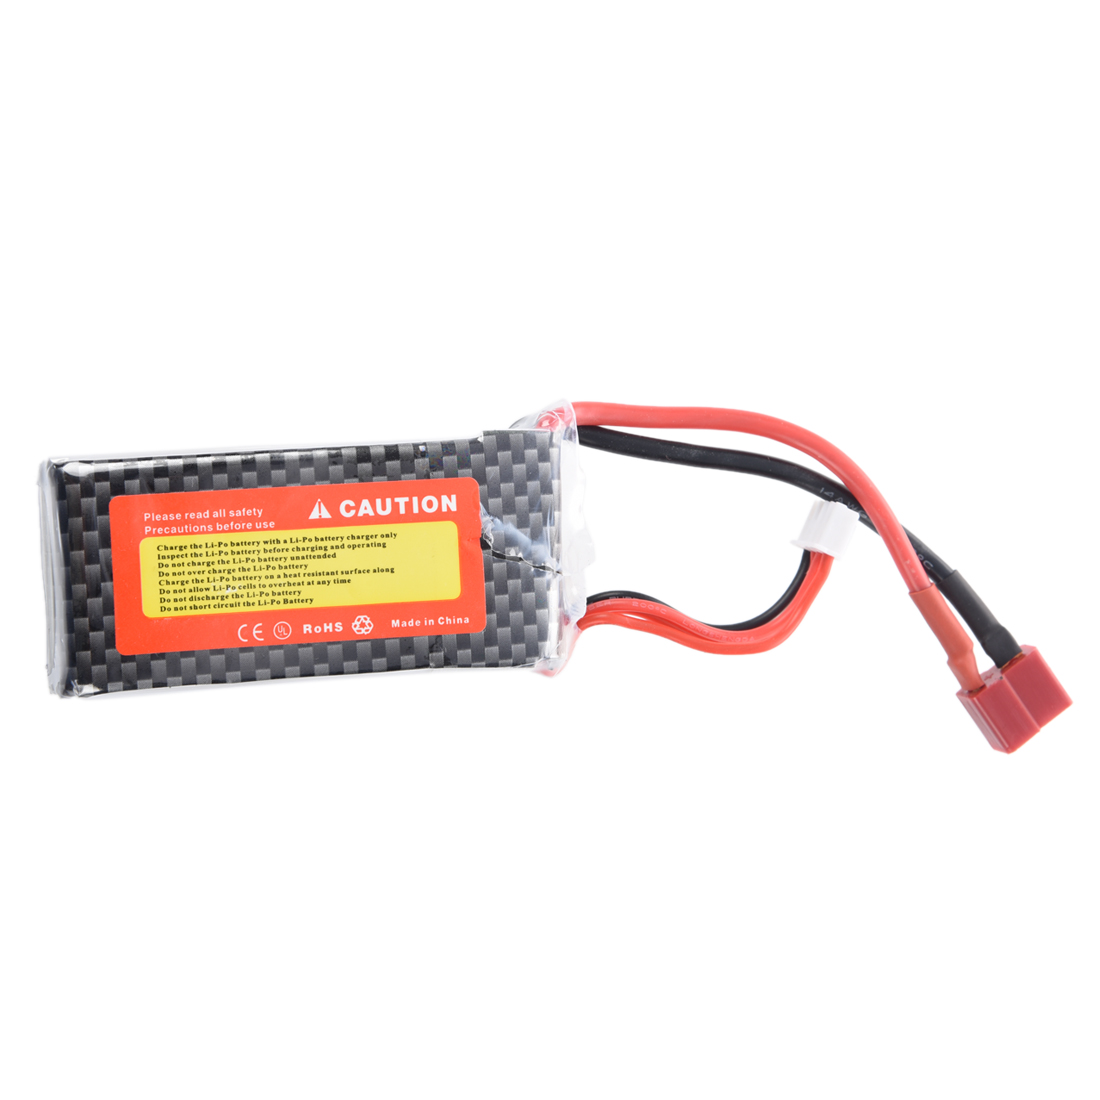 MACH Lion Power 11.1V 1500Mah 40C MAX 60C 3S Lipo Battery For RC Helicopter